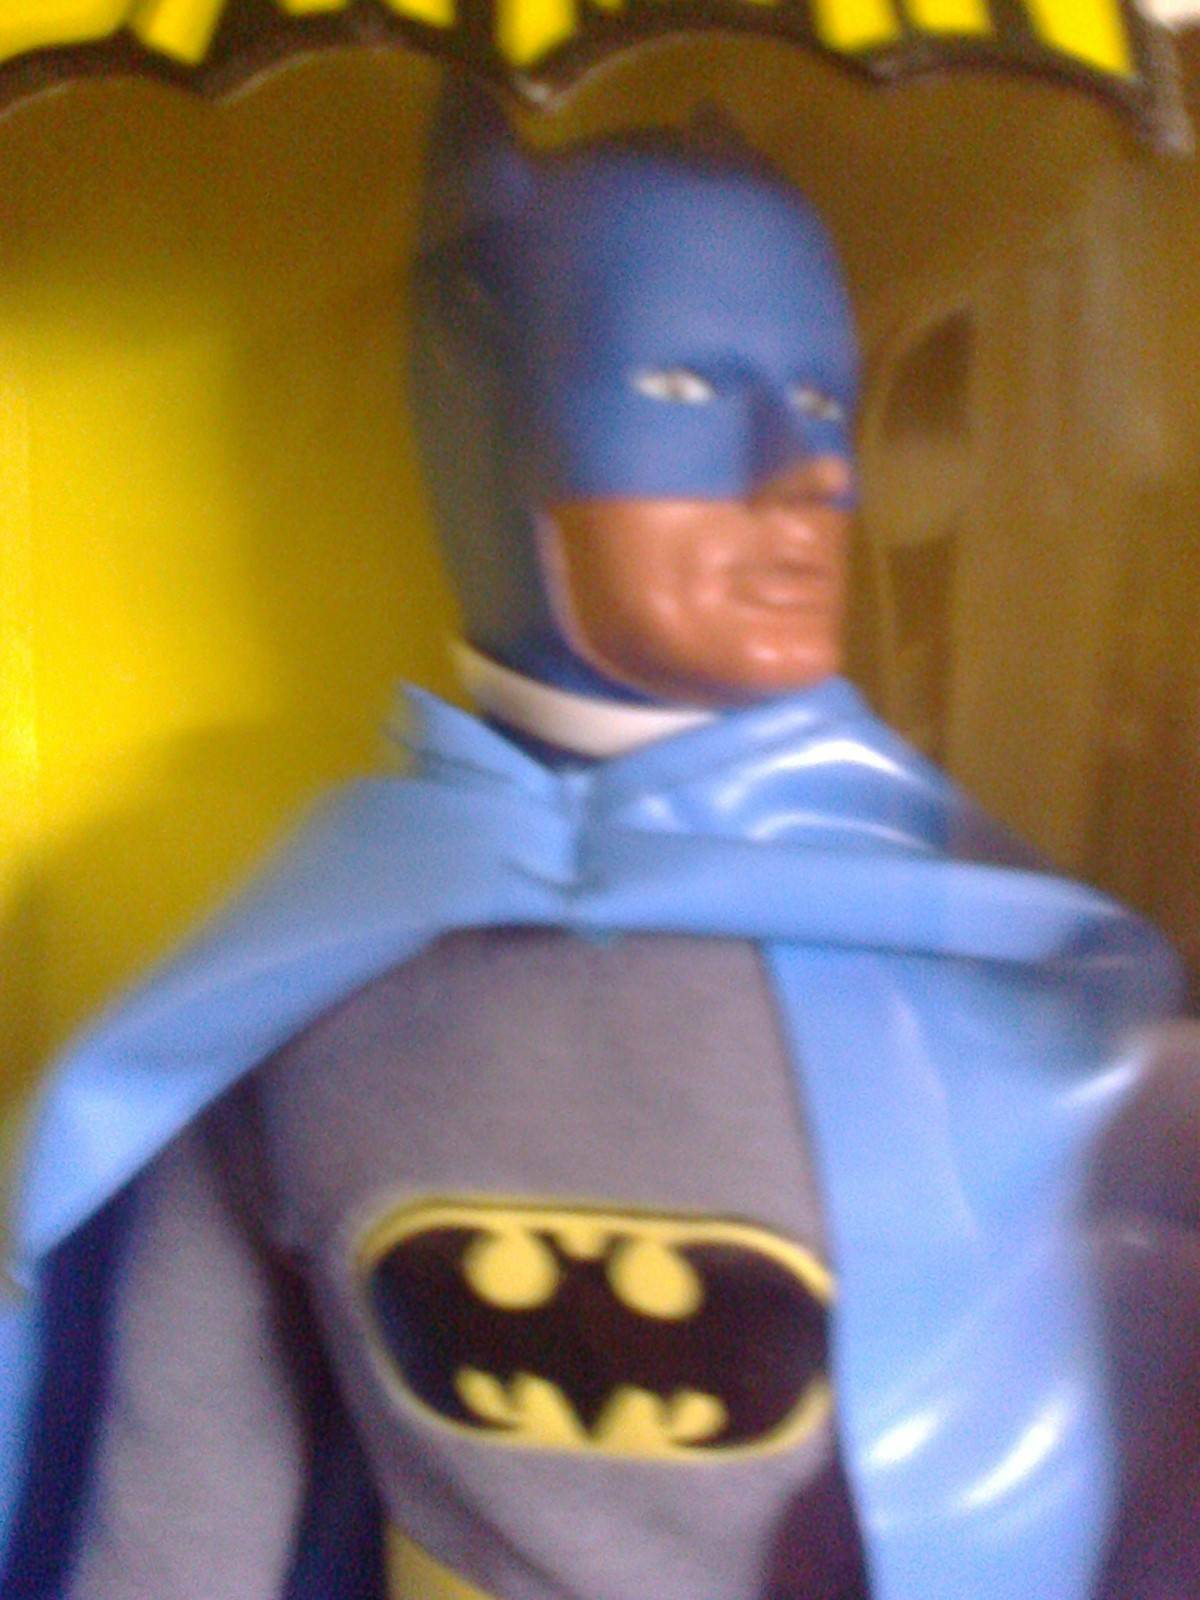 Mego Batman-Figure-12-Inches-Tall-1976 new in opened the box never opened in unplayed with df2040